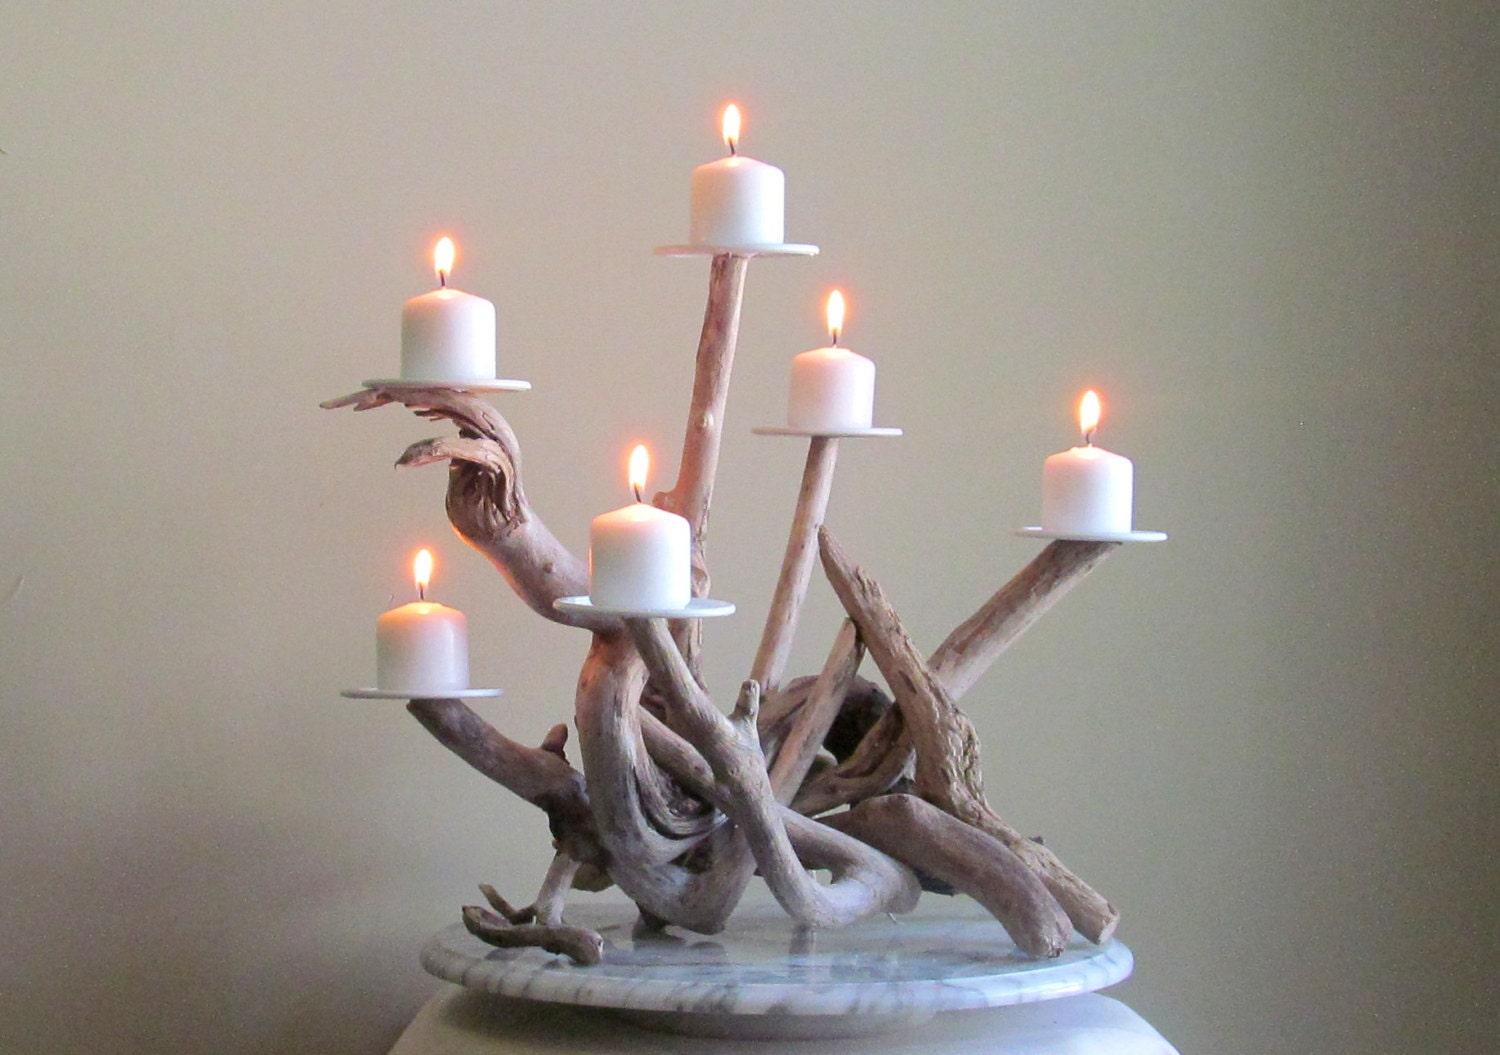 driftwood six candles candelabra wedding centerpiece table. Black Bedroom Furniture Sets. Home Design Ideas